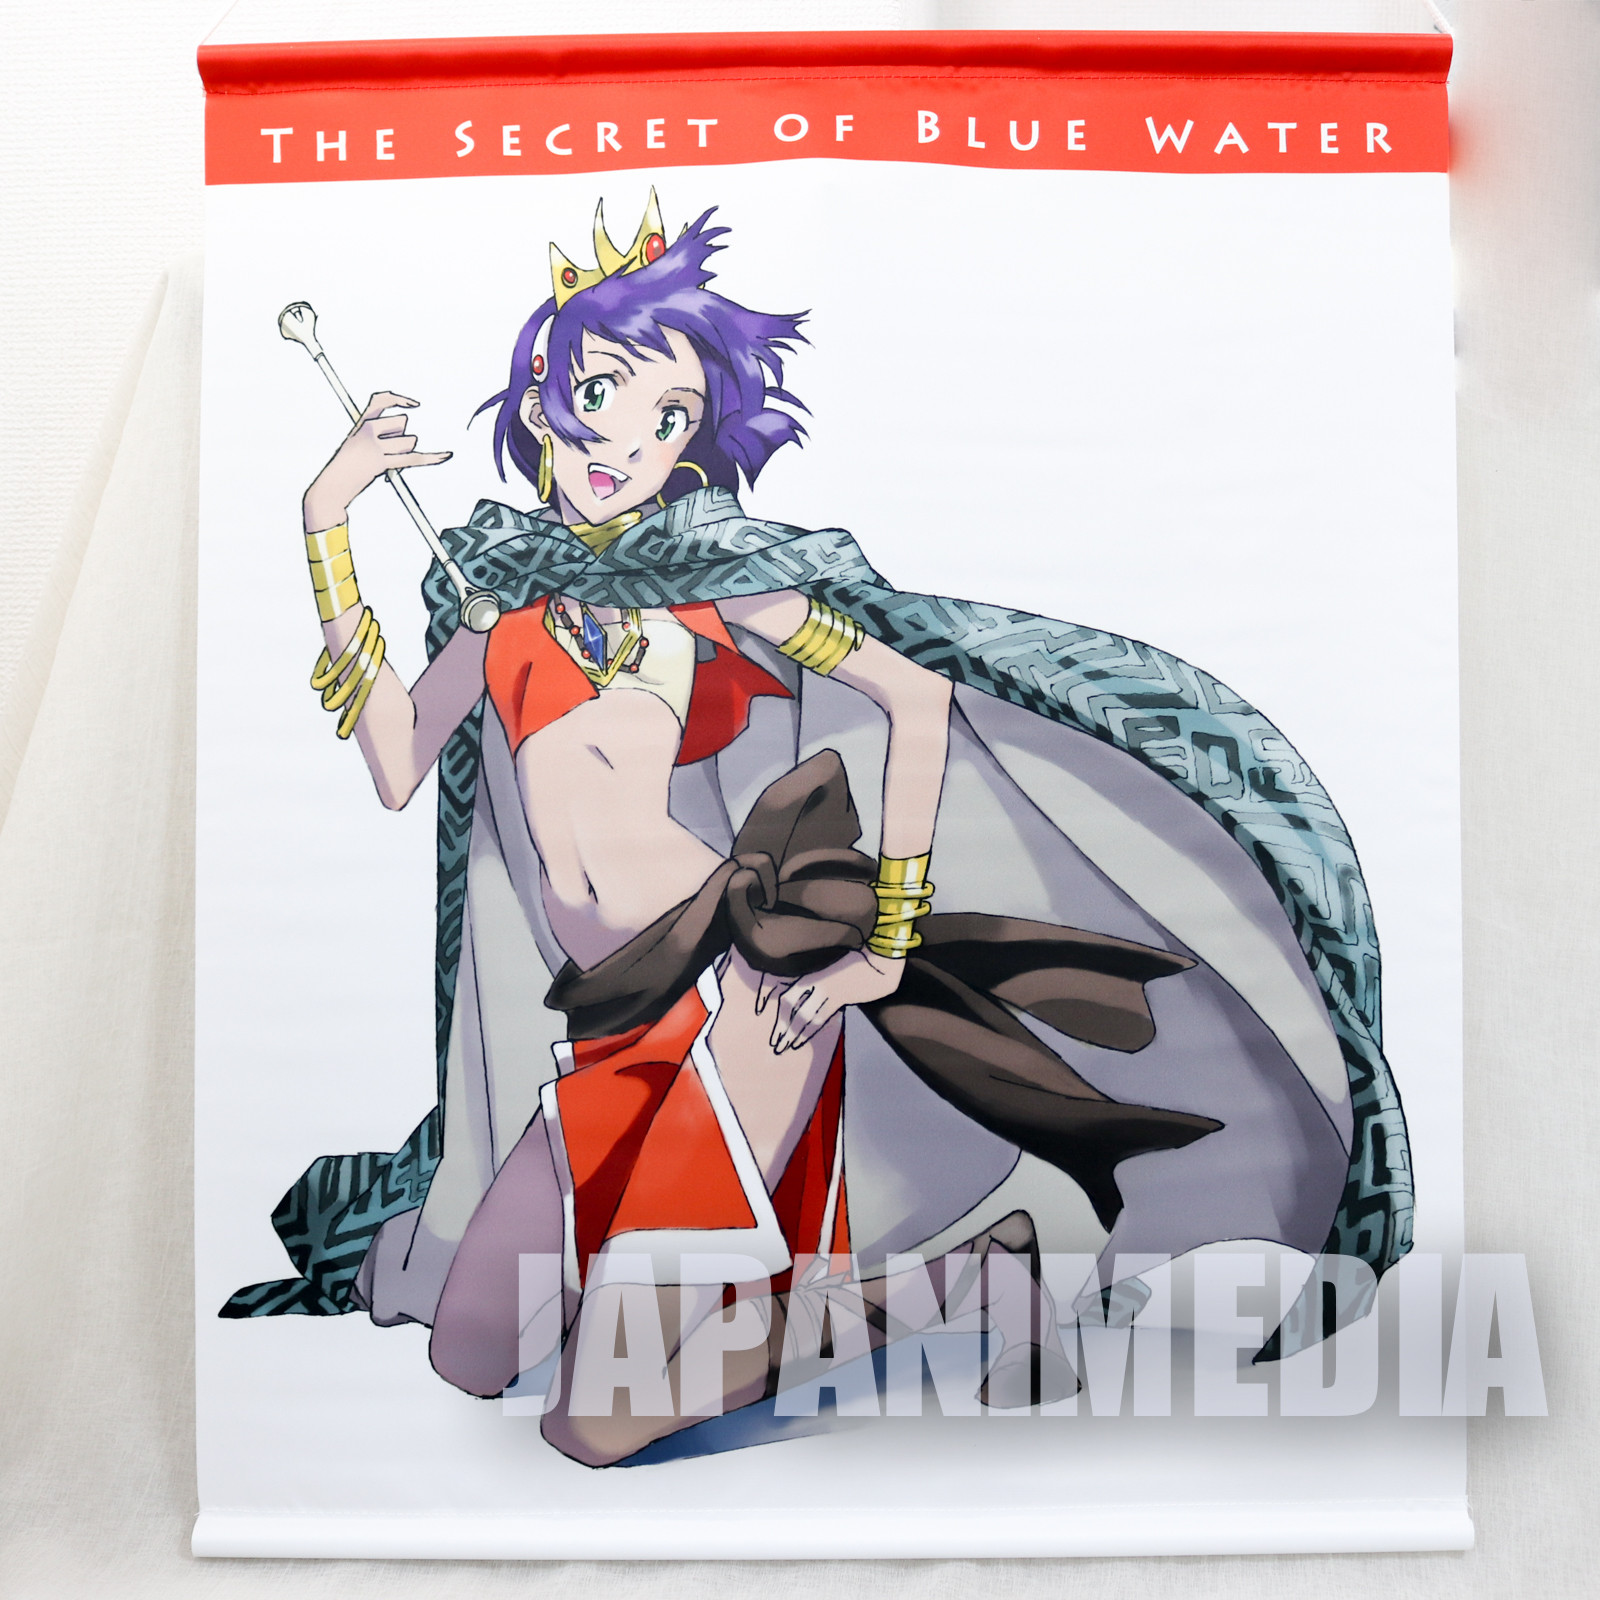 Nadia The Secret of Blue Water Tapestry 580mmÃ_15mm JAPAN ANIME GAINAX